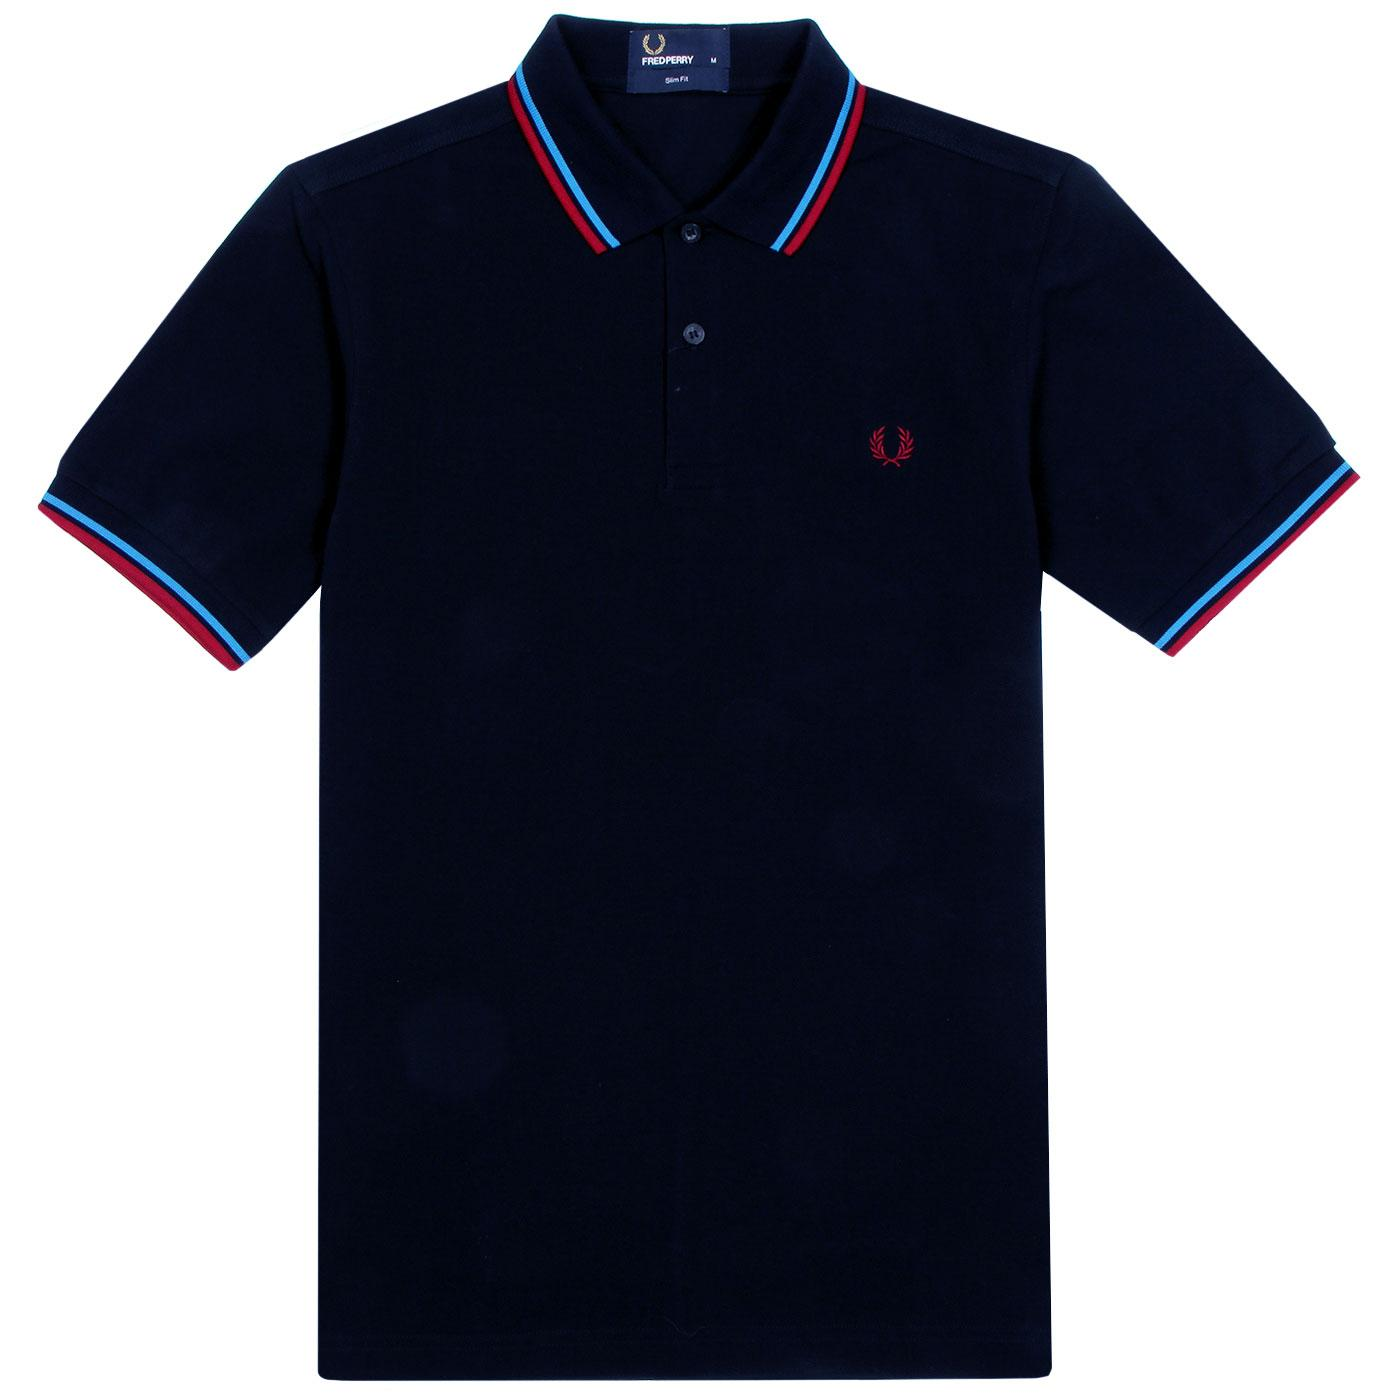 FRED PERRY M3600 Mod Twin Tipped Pique Polo Top N